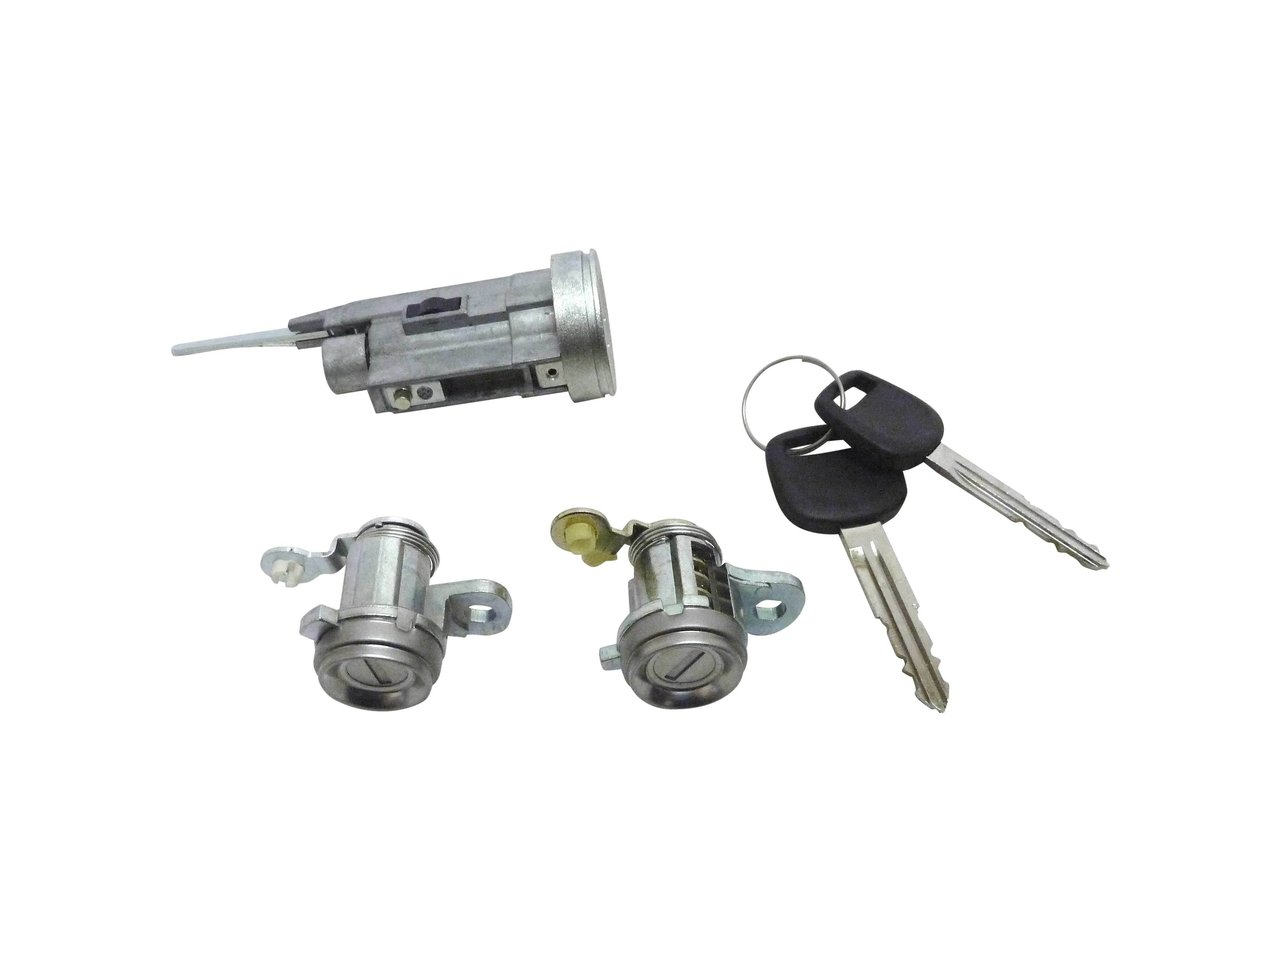 ignition  u0026 door lock barrel  u0026 key set suitable for